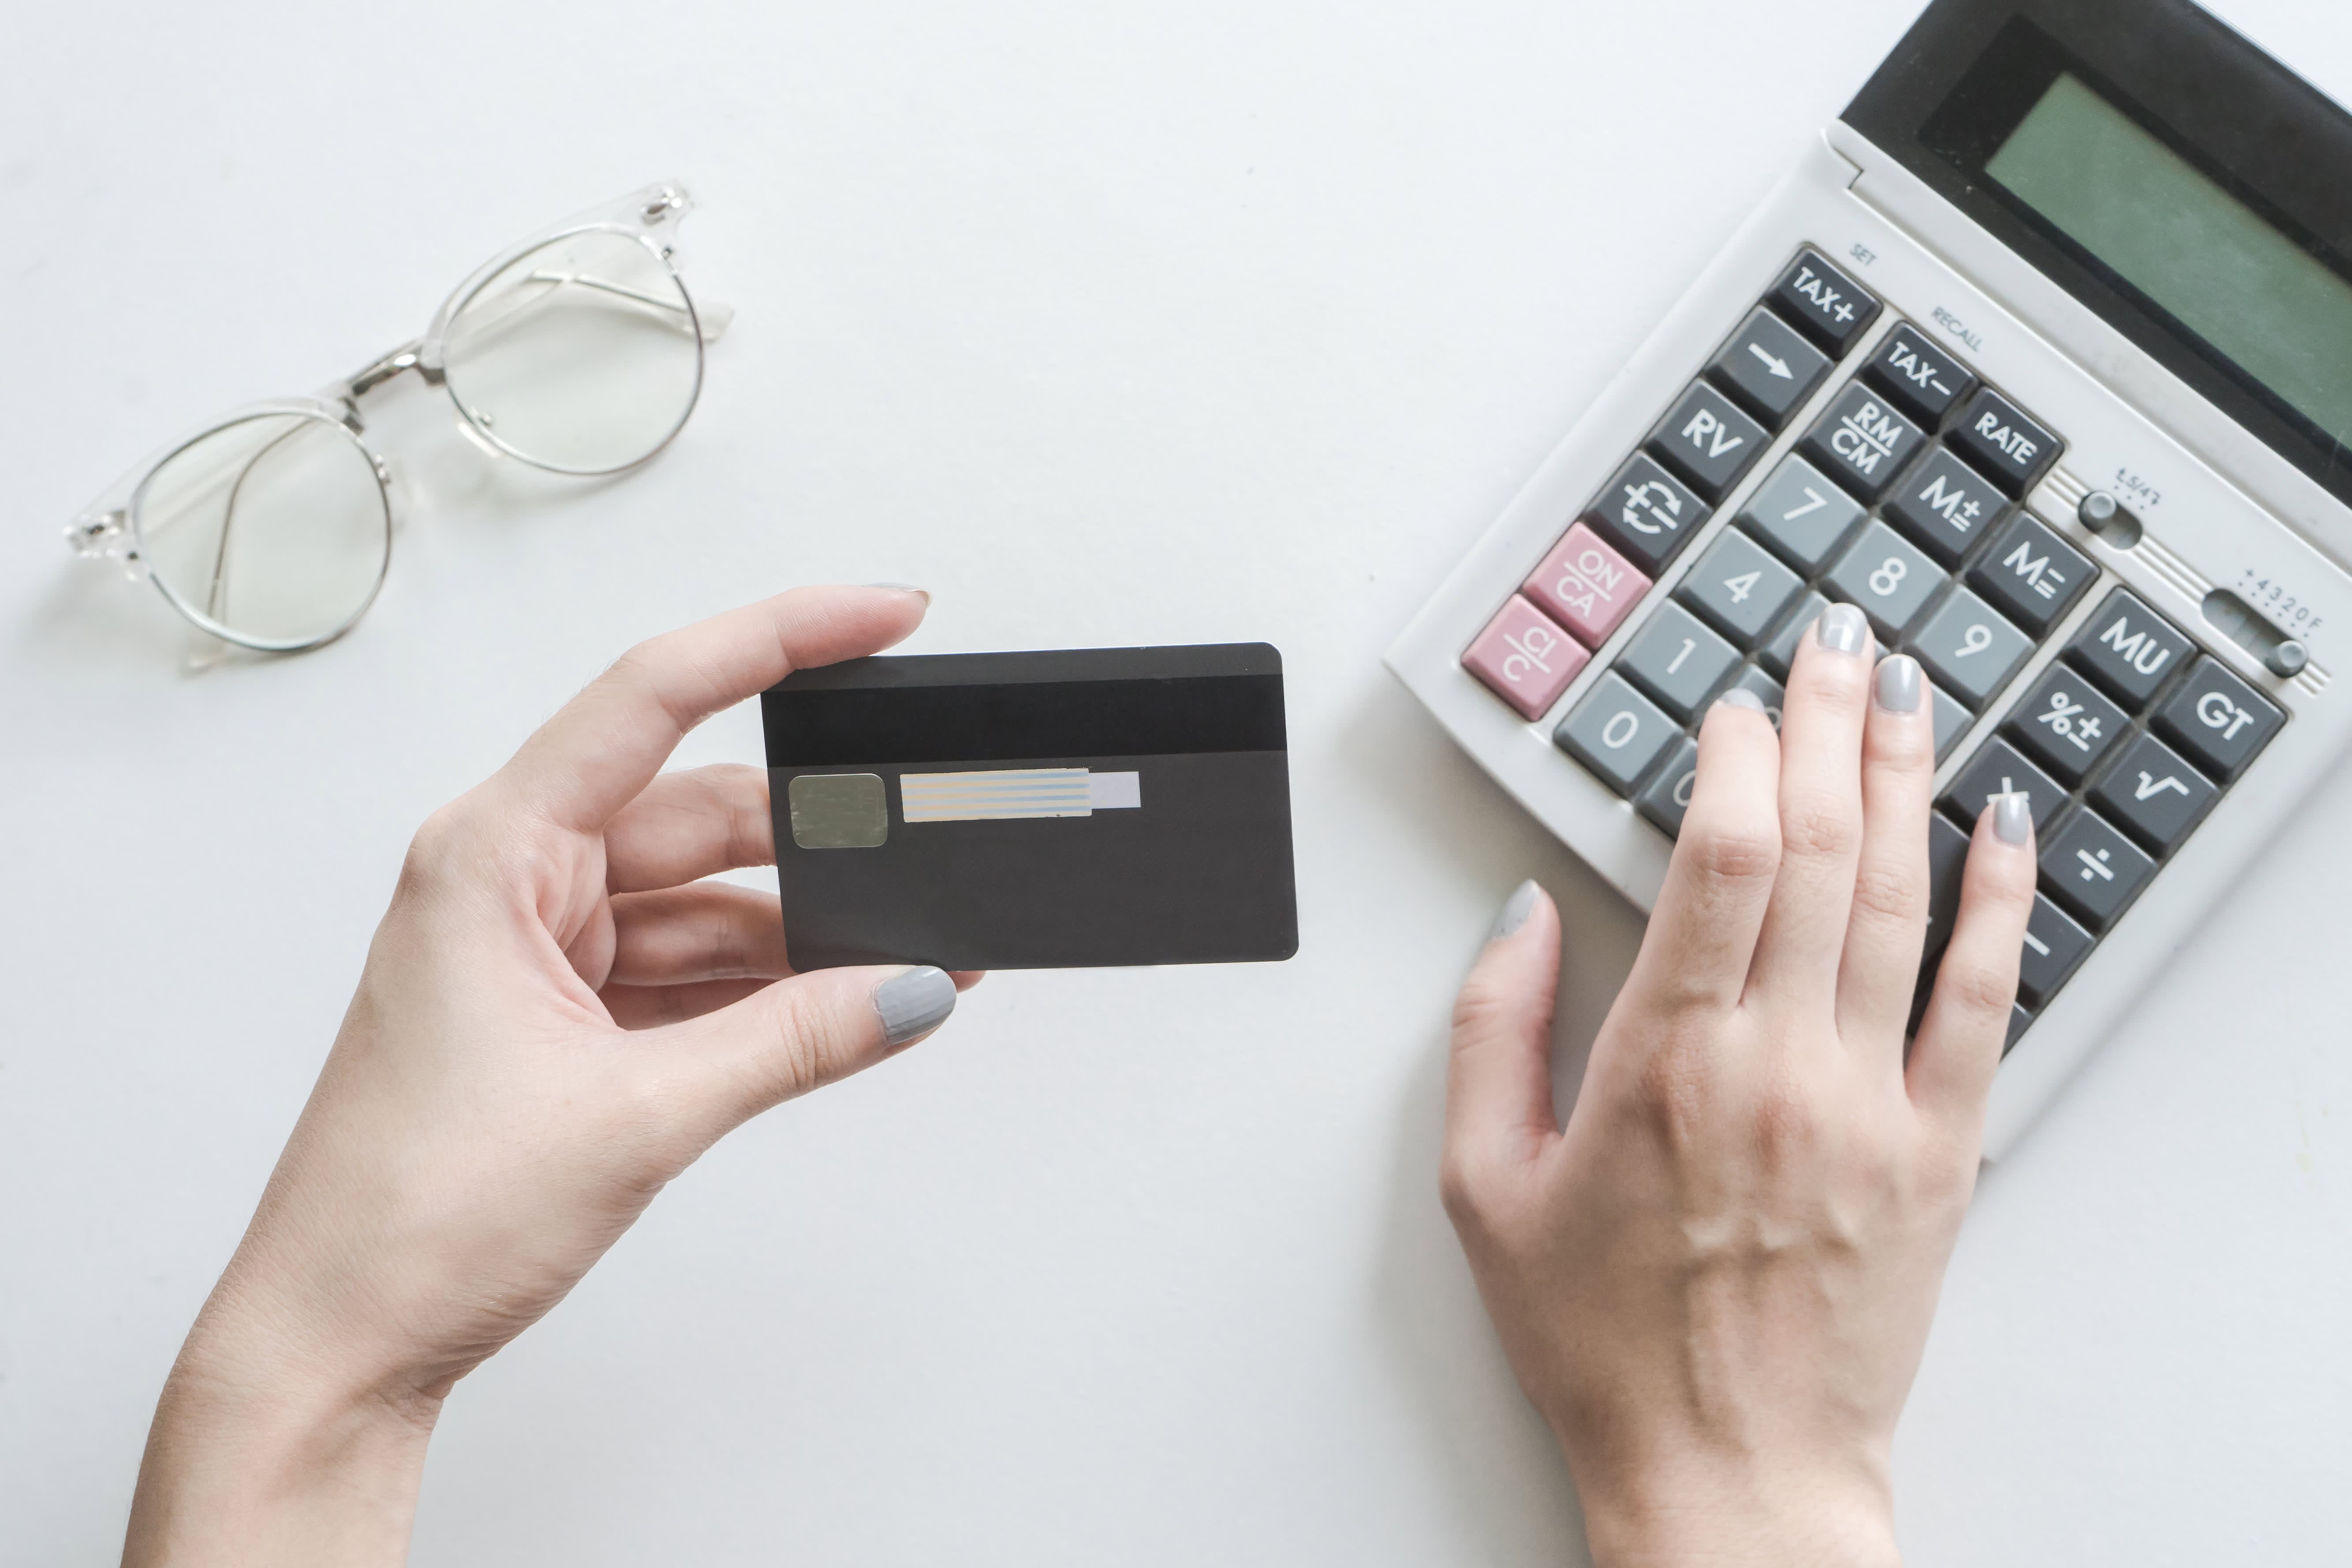 When is it worthwhile to pay an annual fee for a credit card?